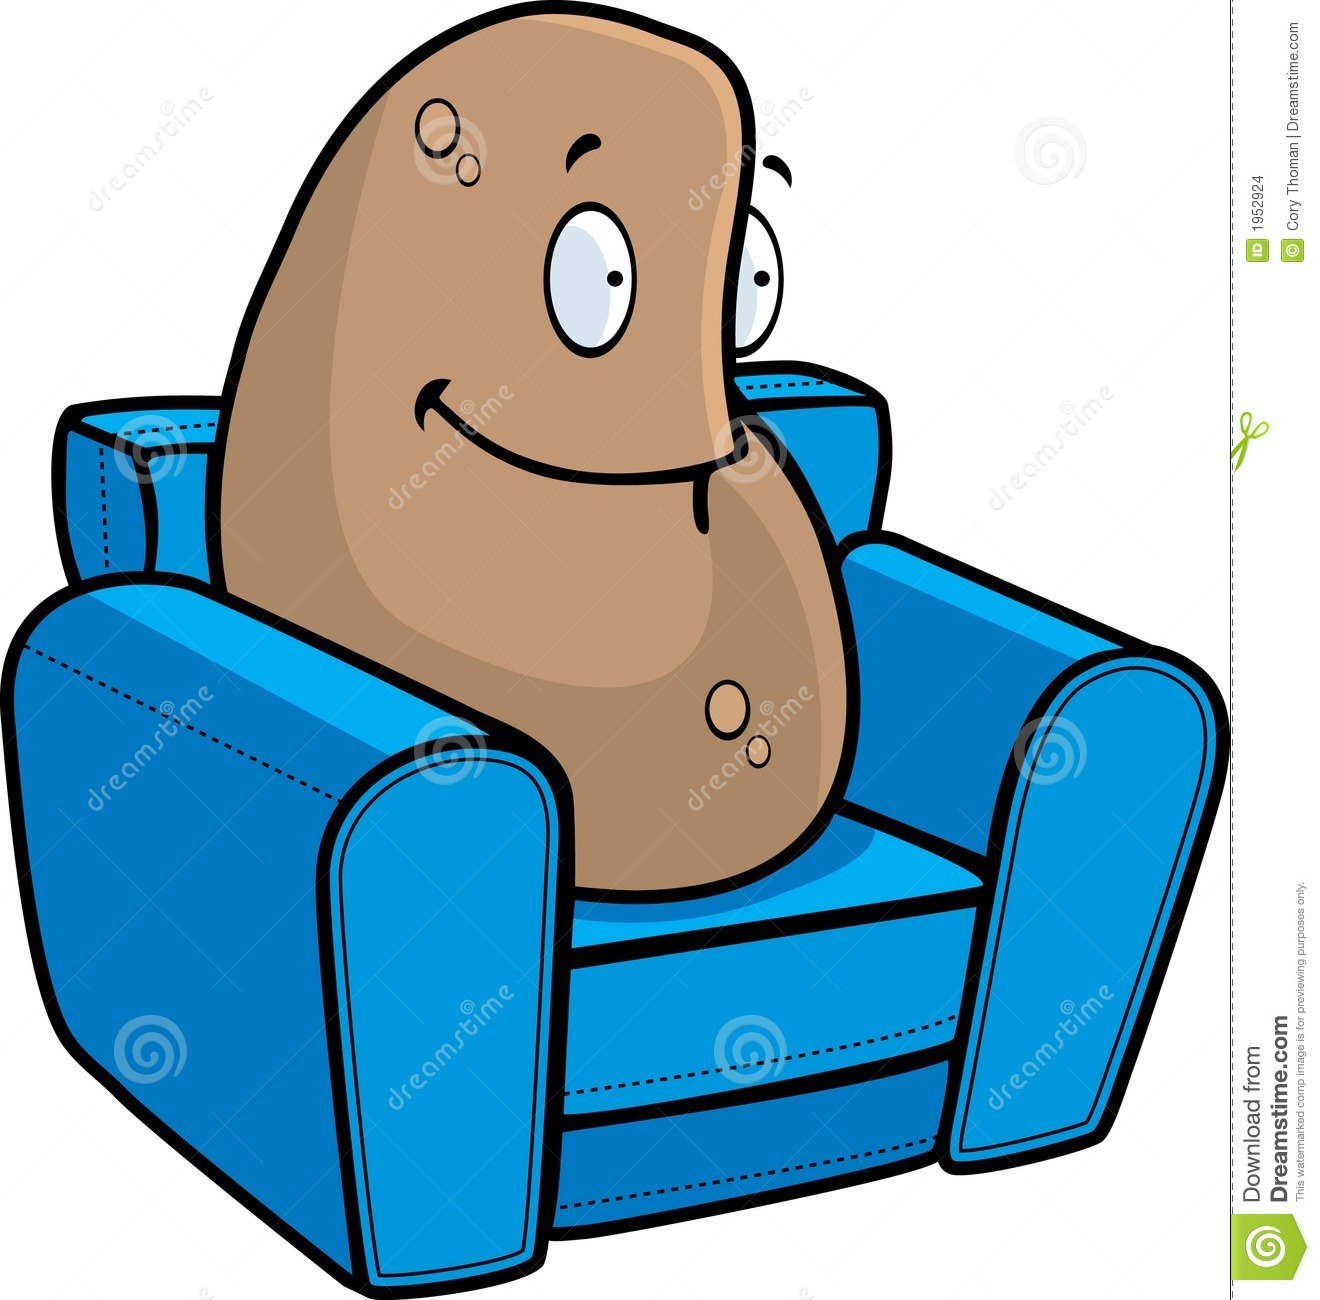 Lazy Person On Couch Cartoon Couch Potato stock vec...